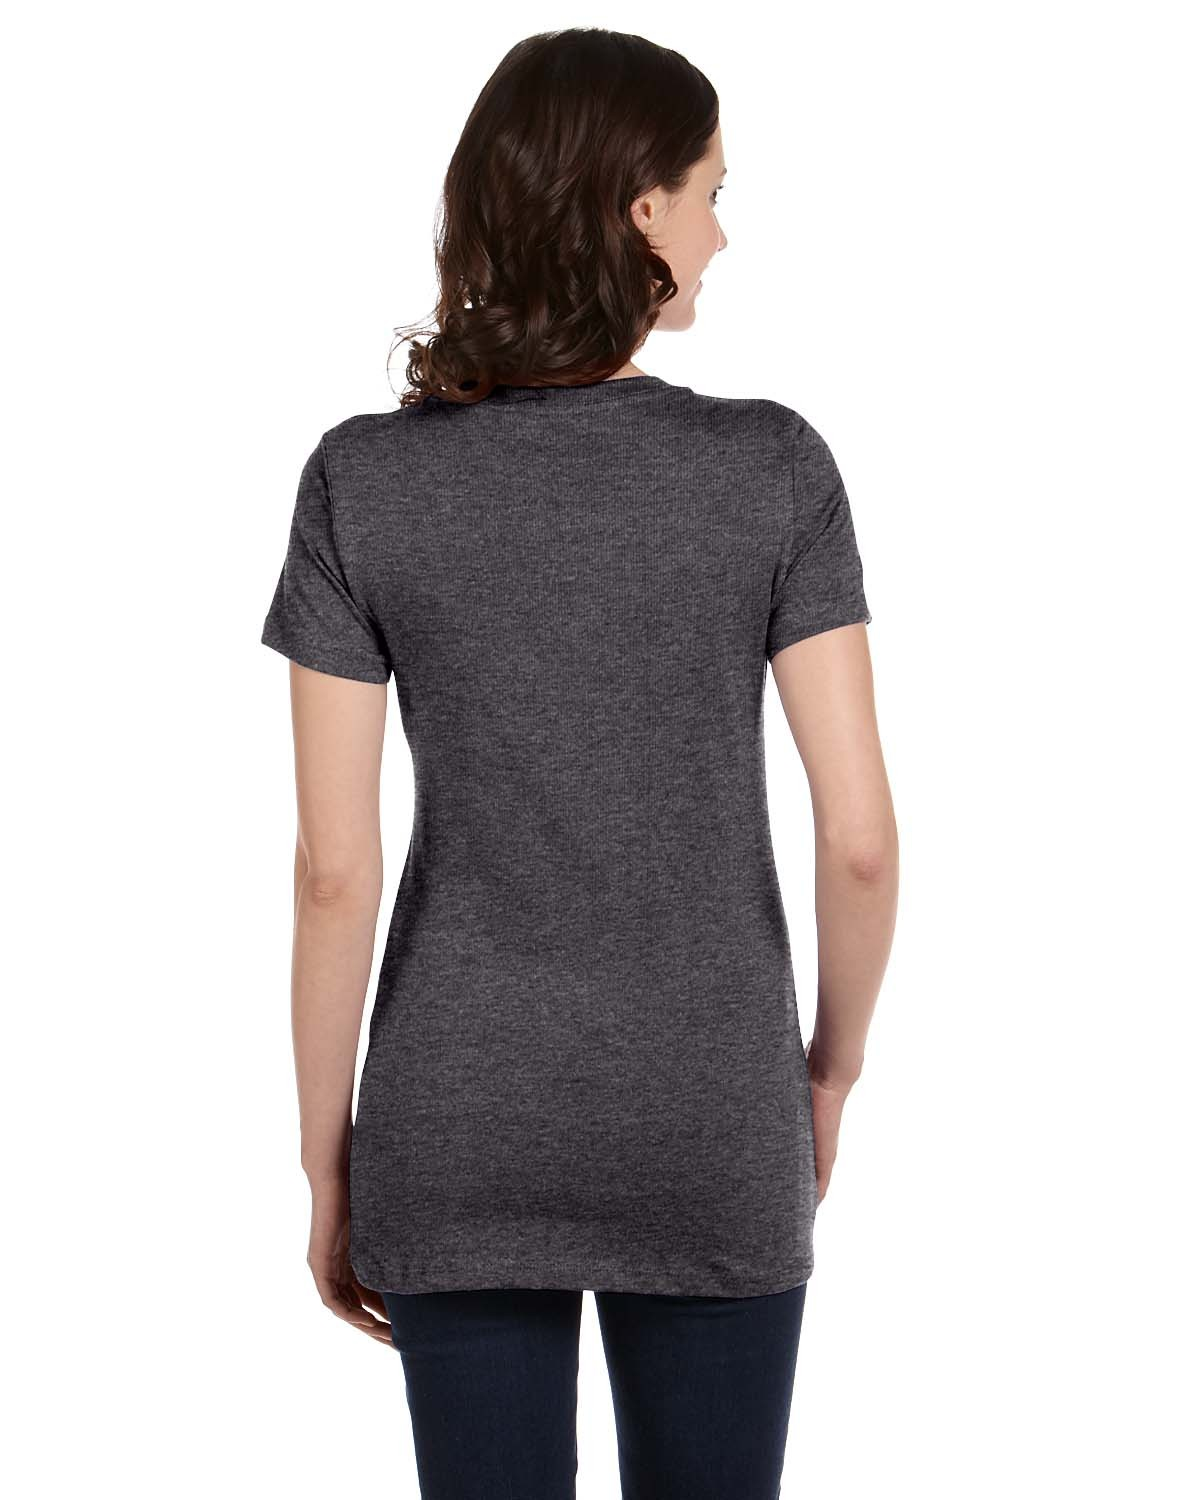 B6035 Bella + Canvas DRK GREY HEATHER